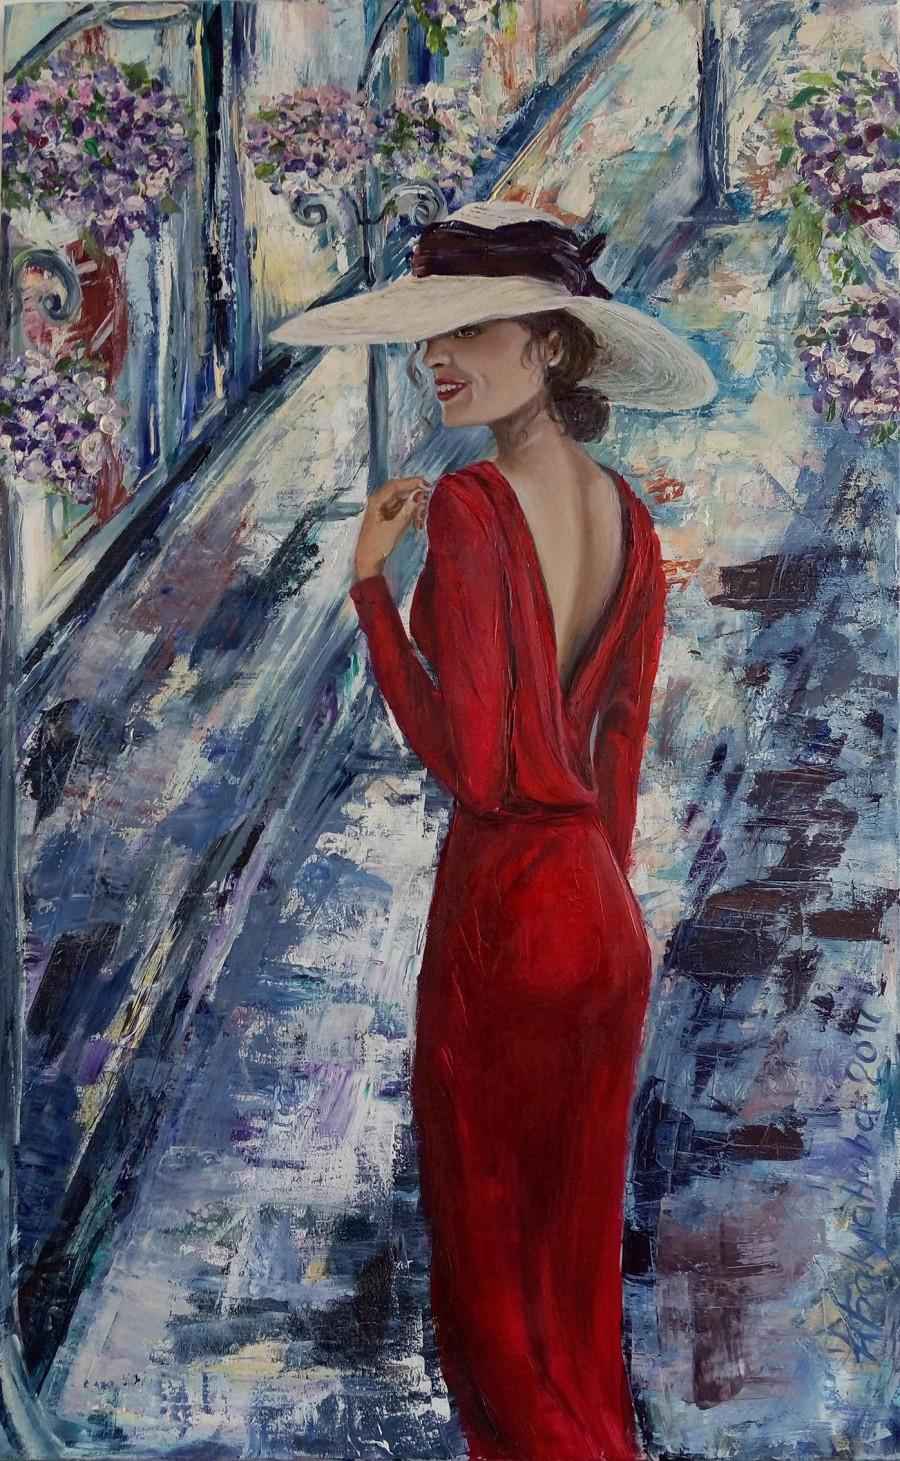 Wedding - Lady in red  50x80 cm Original mixed painting 2017 Living room decor Romantic mysterious women Impression Wall Art Colorful unique gift